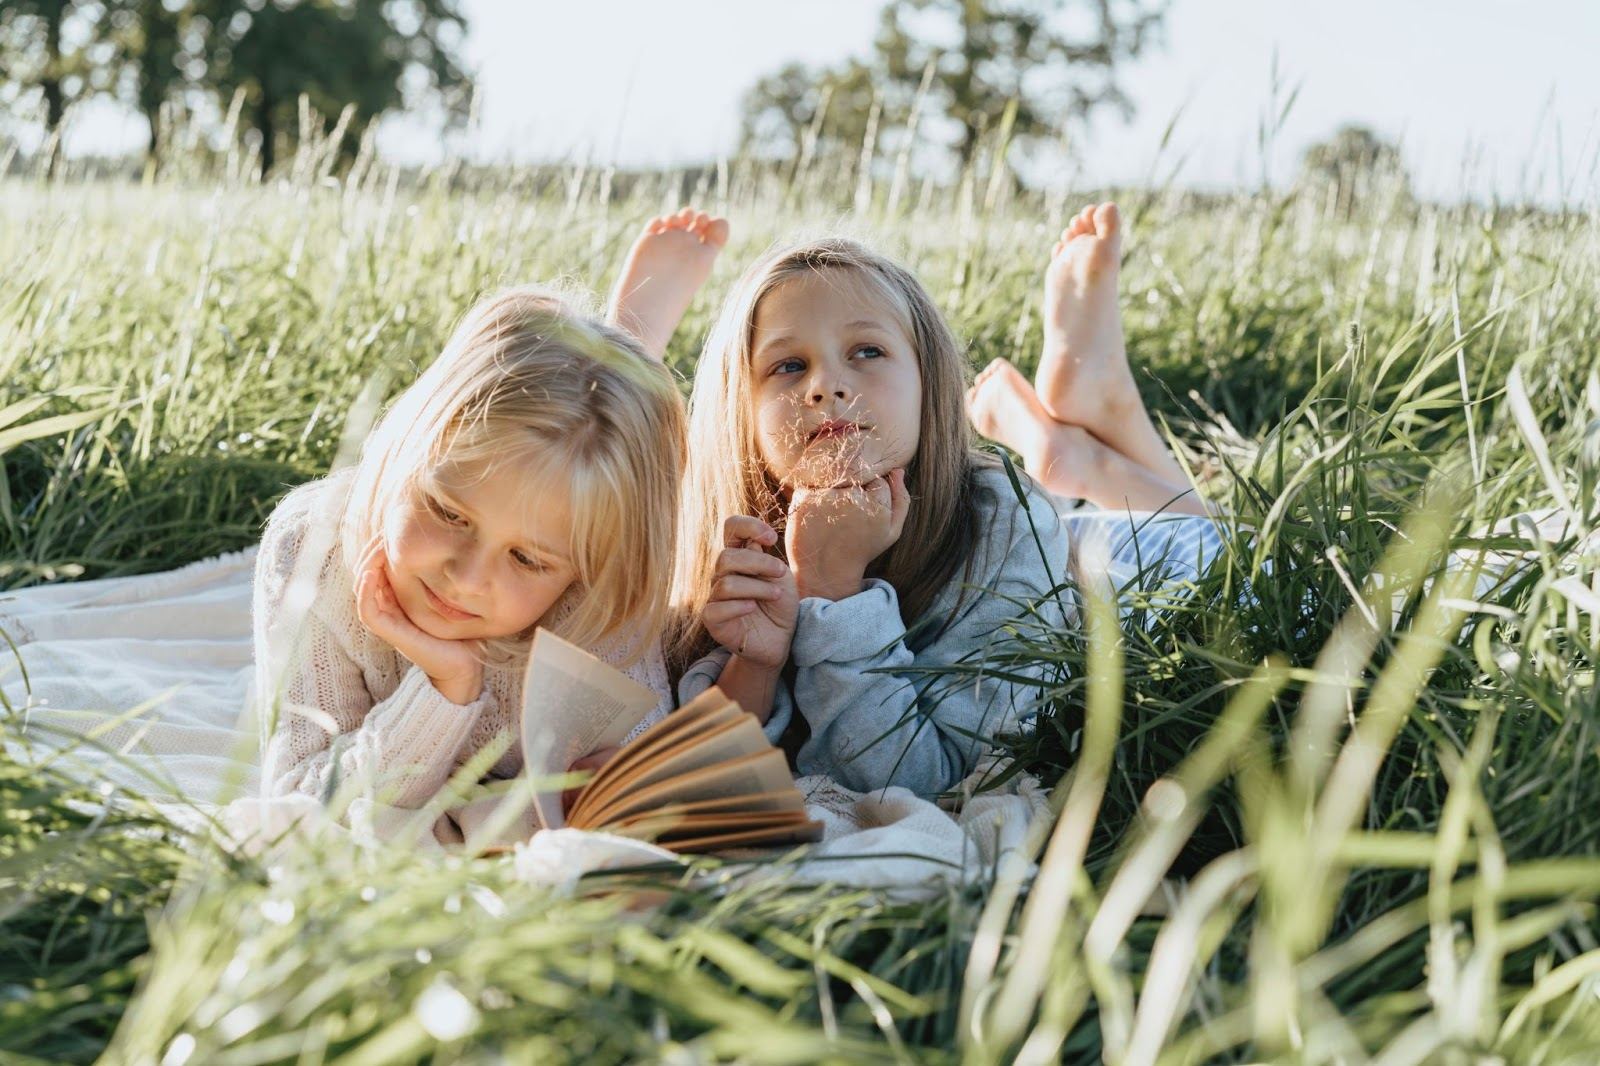 Two young girls of around five years old lay on the grass. One girl is reading a book, while another looks at the sky.